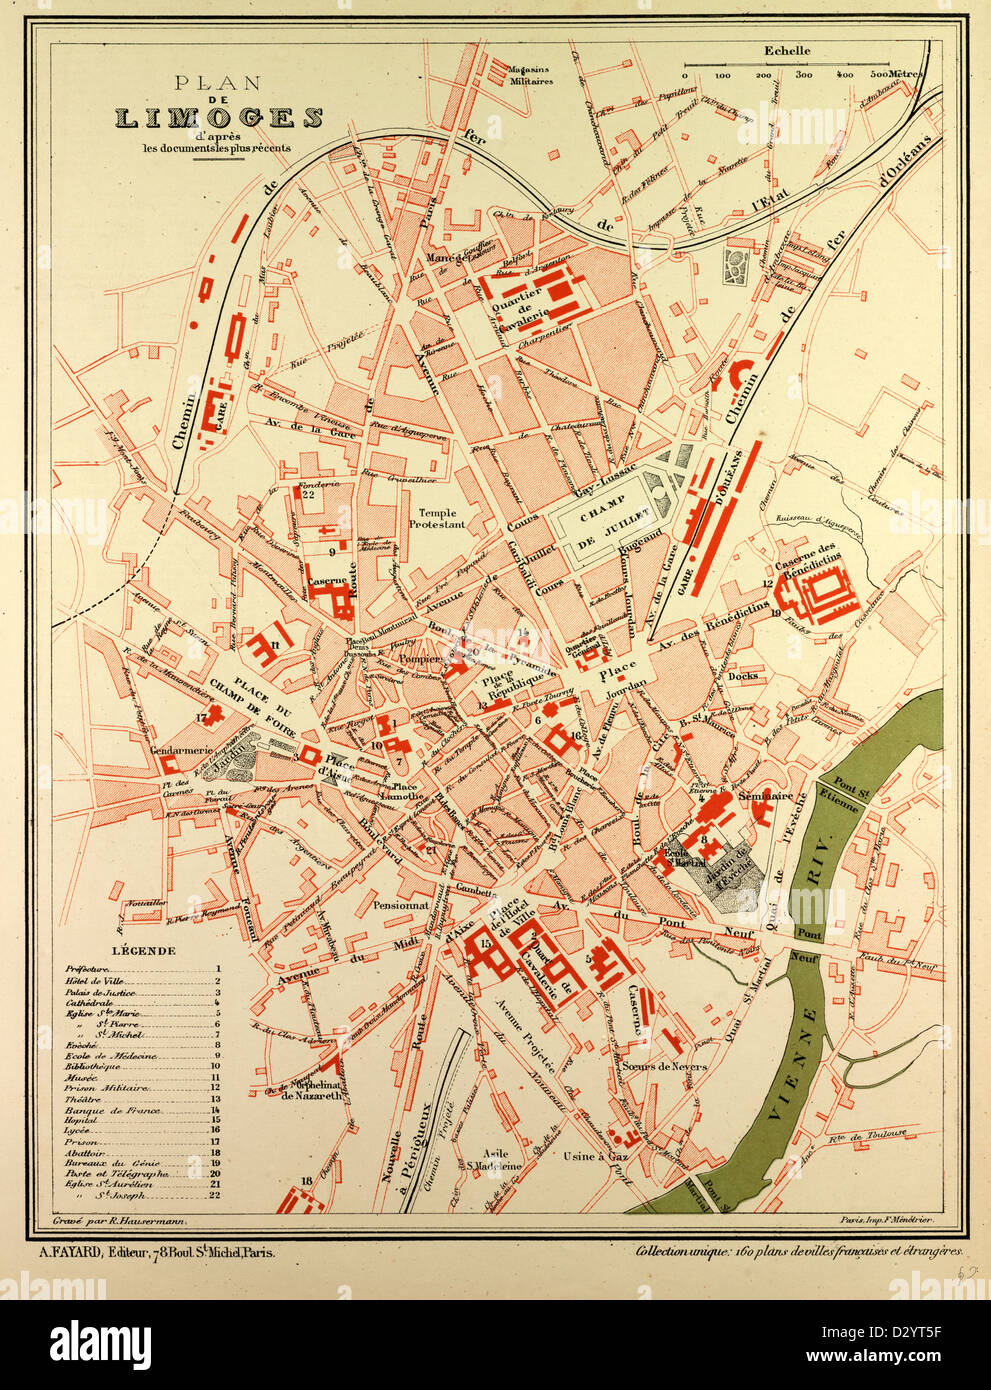 MAP OF LIMOGES FRANCE Stock Photo Alamy - Limoges france map